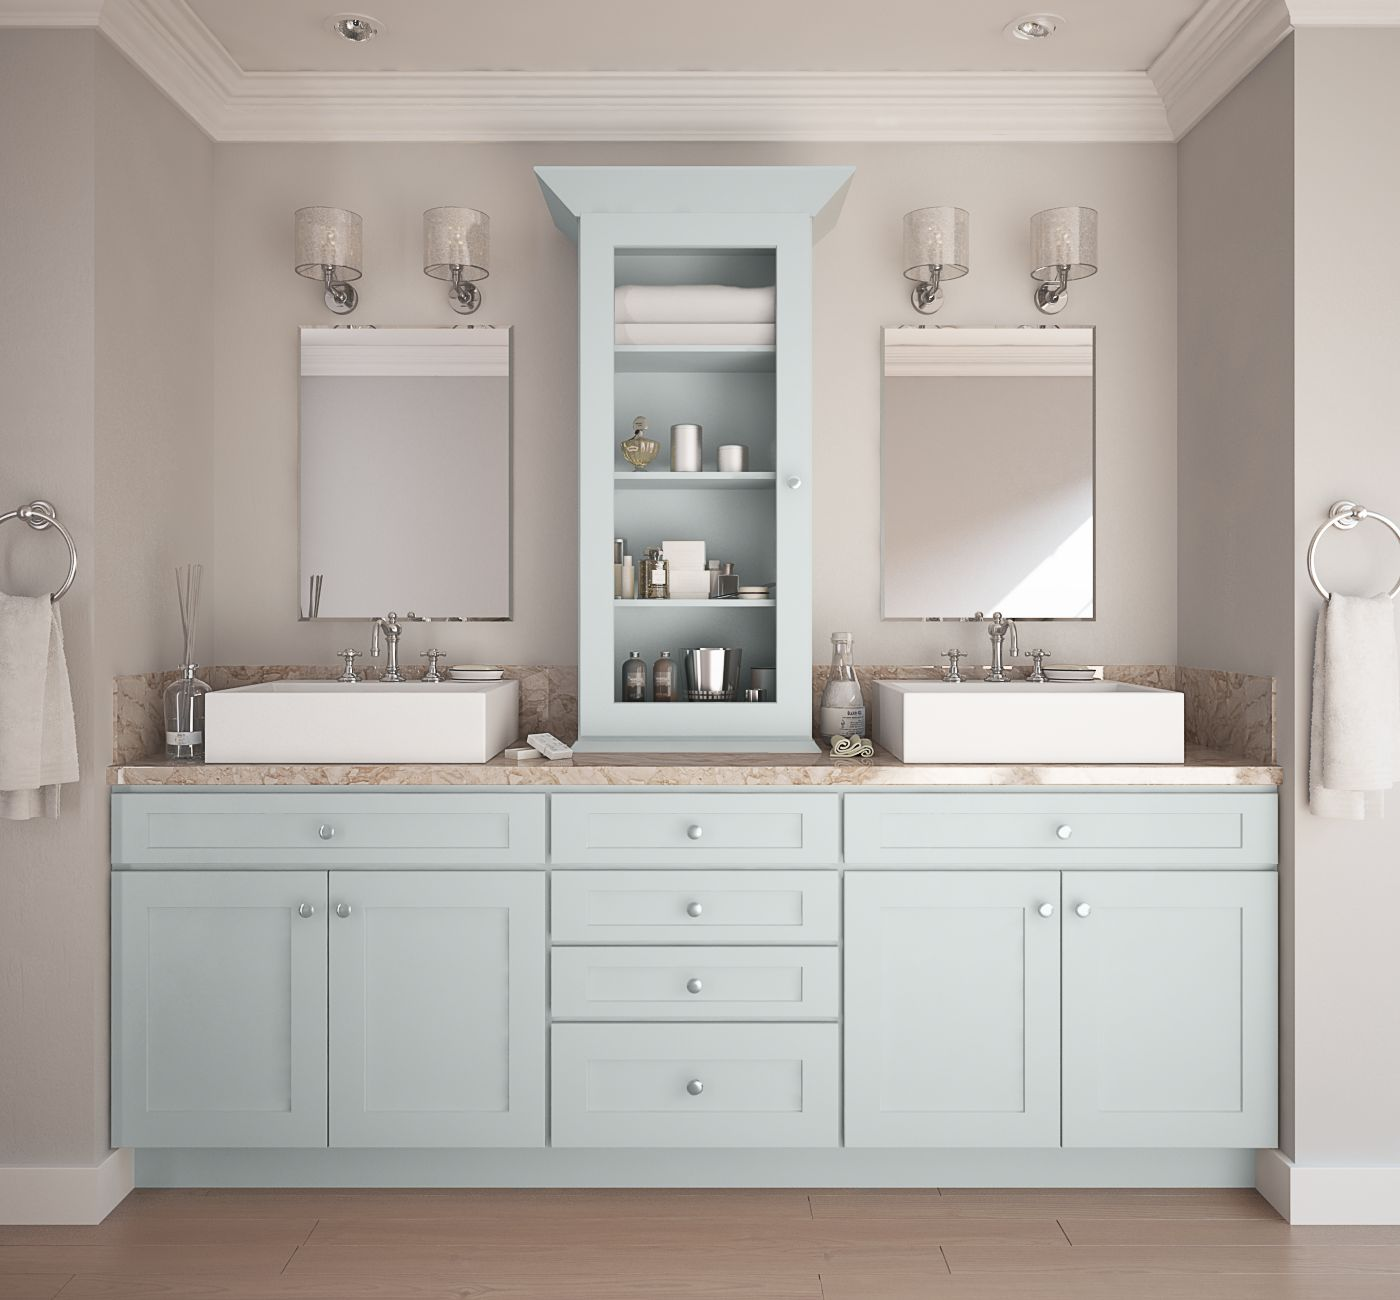 Can I Use Kitchen Cabinets In The Bathroom: Society Shaker Tidewater (Semi-Custom)